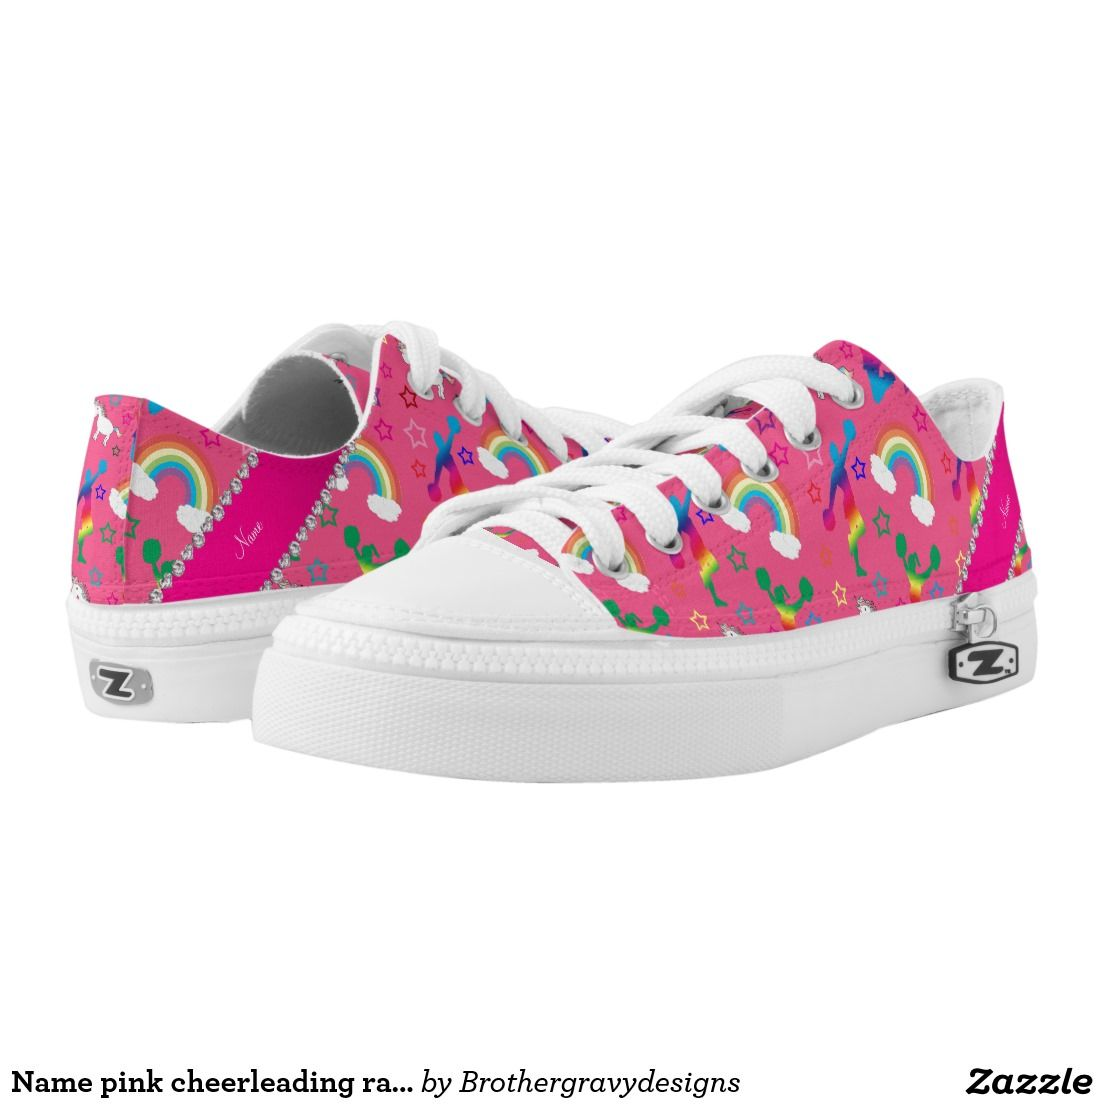 Name pink cheerleading rainbow unicorns stars Low-Top sneakers